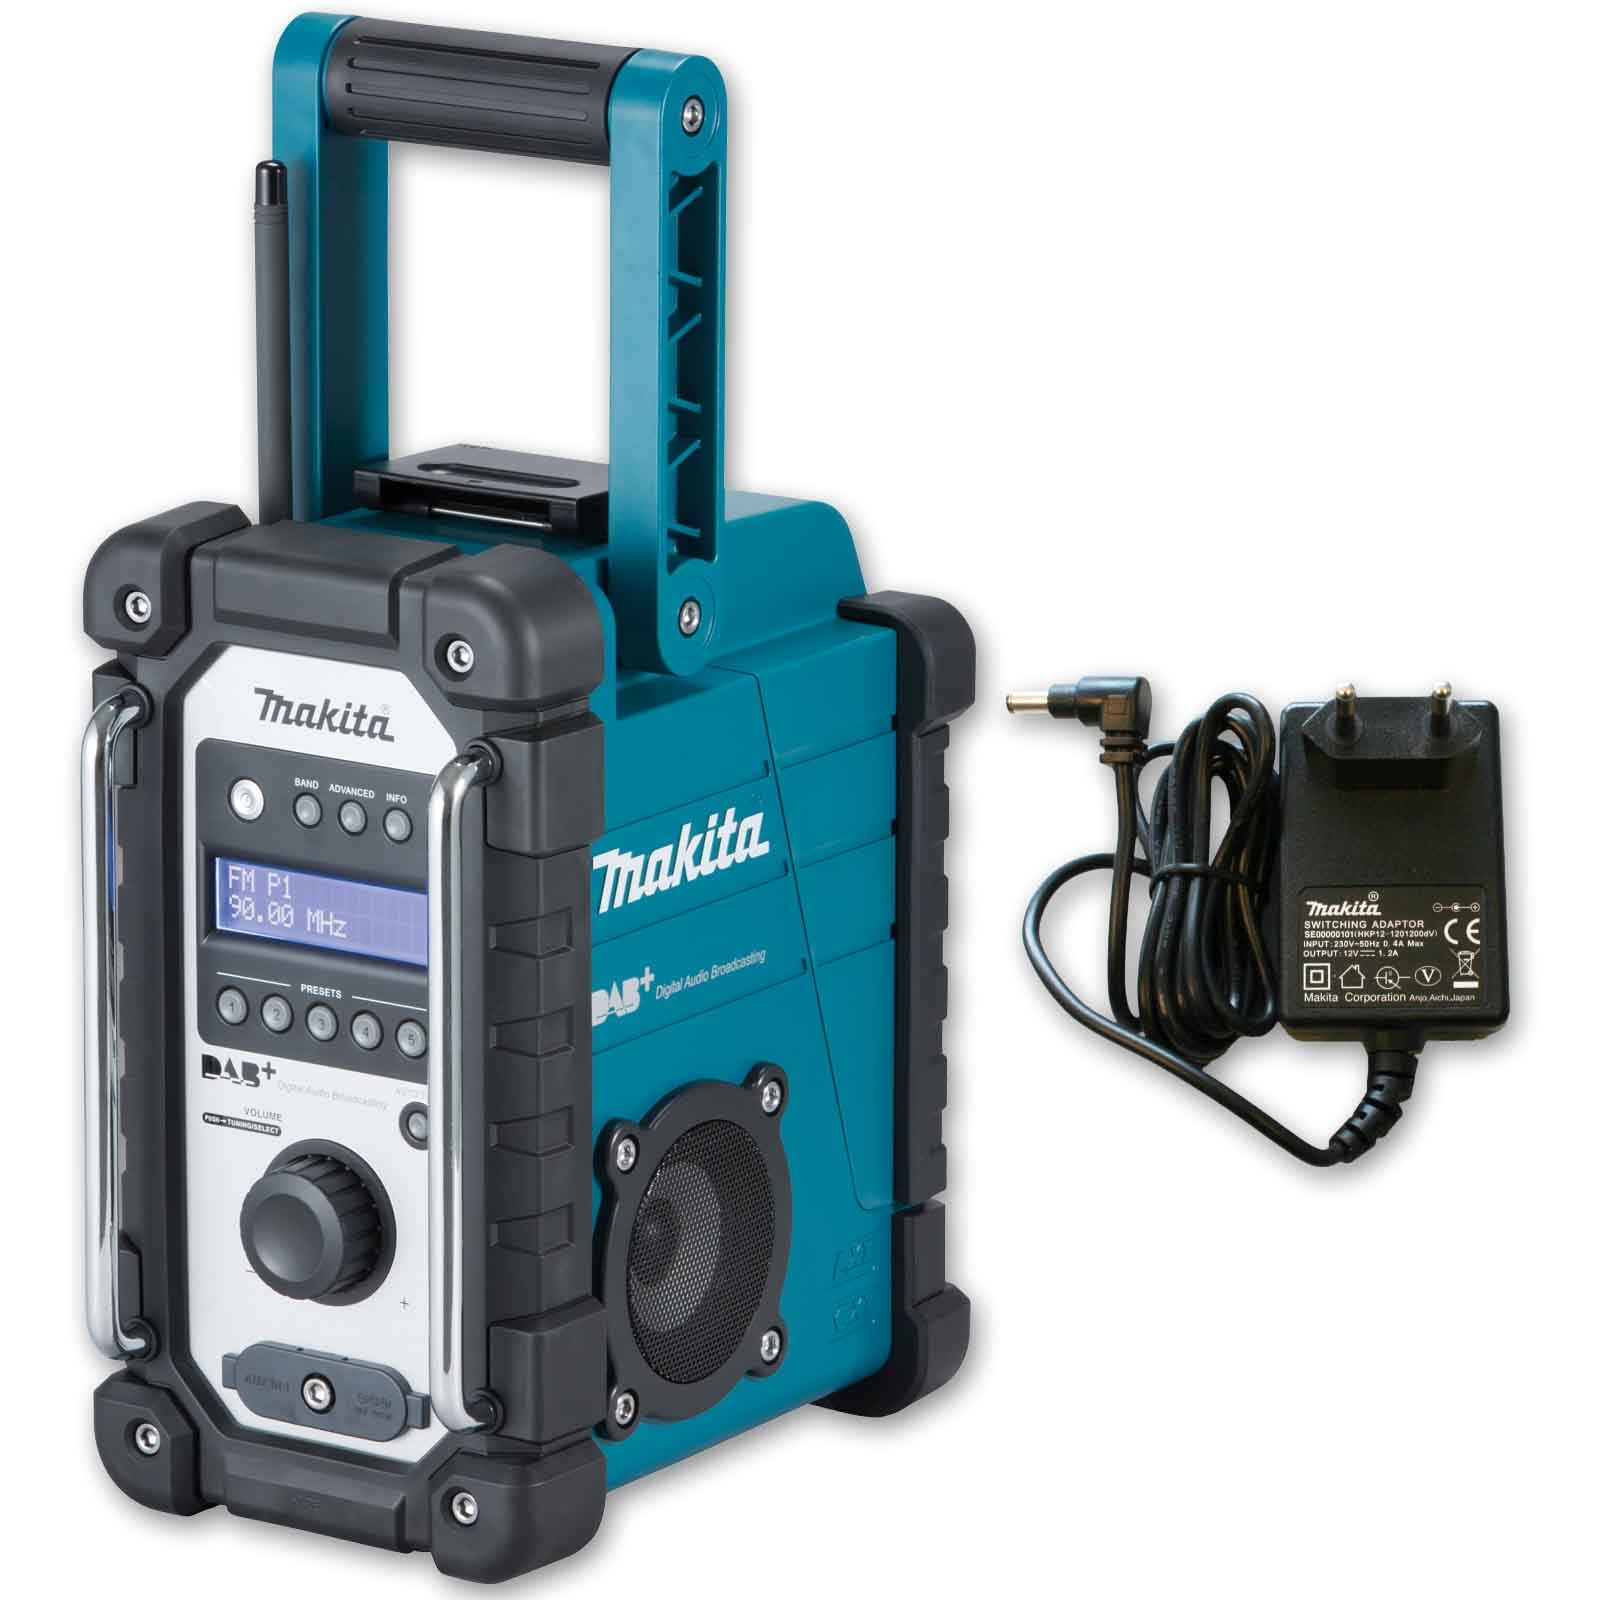 makita dmr 108 baustellenradio mit bluetooth usb aux line ma50222 ebay. Black Bedroom Furniture Sets. Home Design Ideas